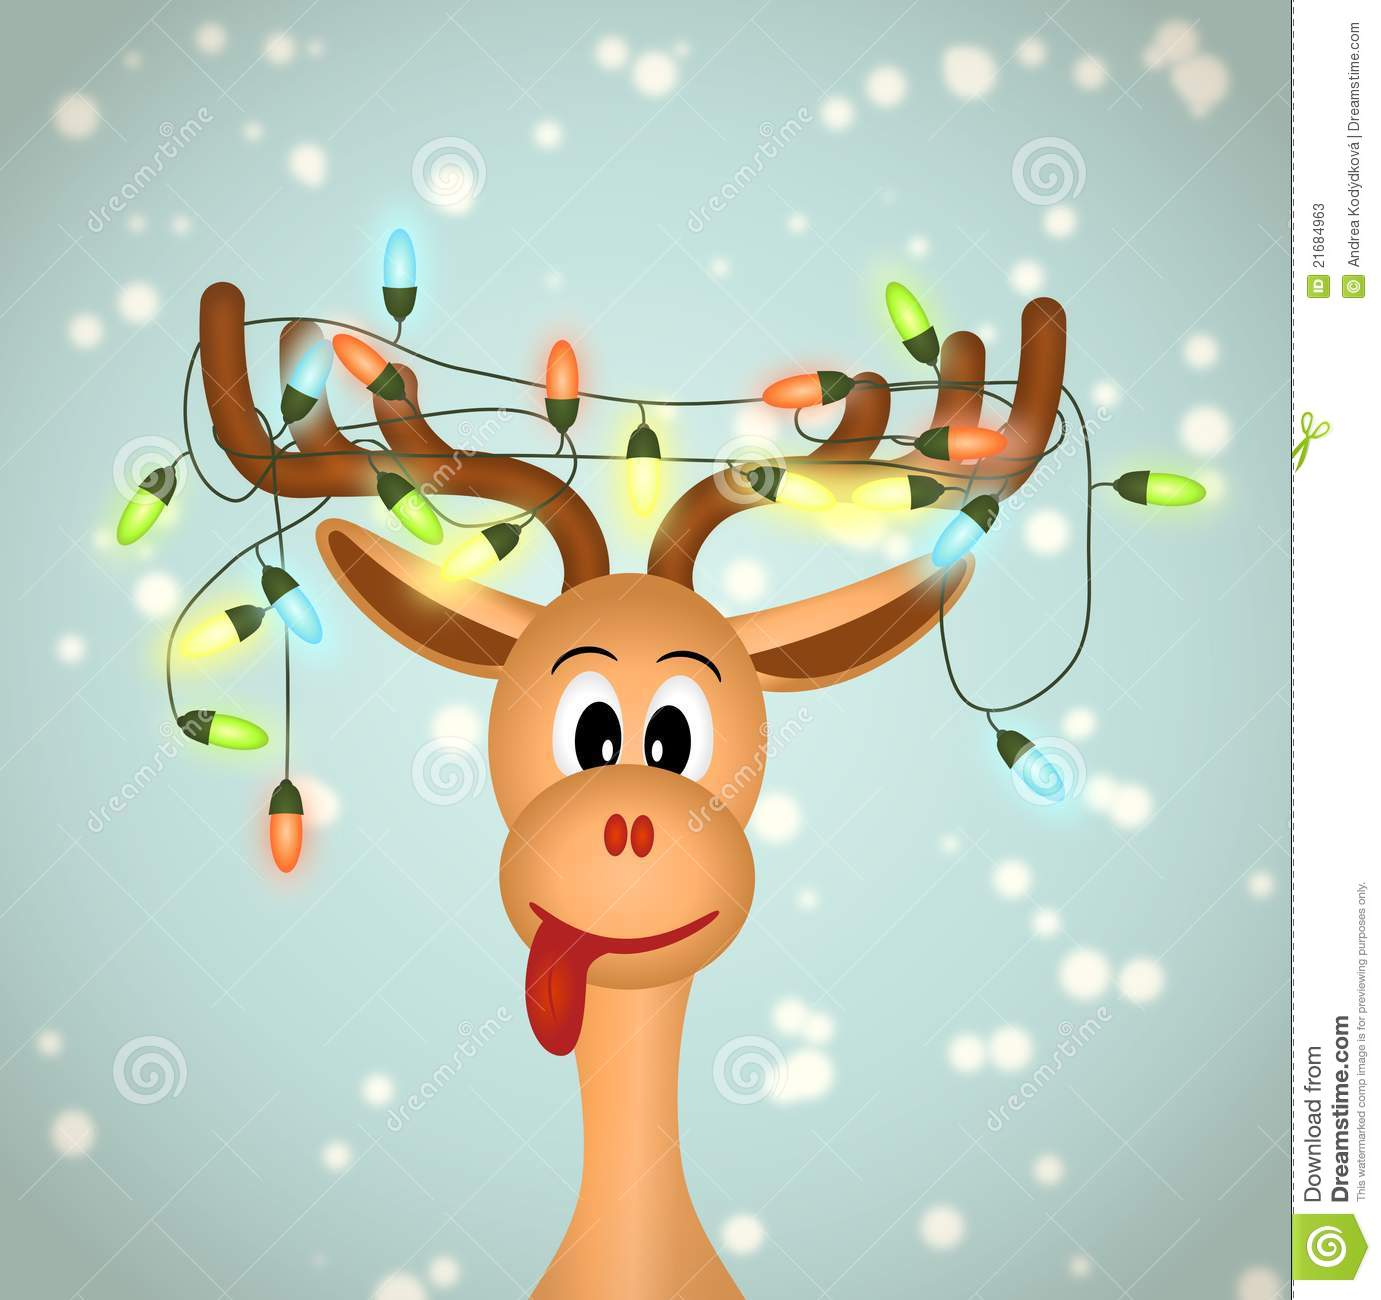 Funny Christmas Reindeer Clipart.